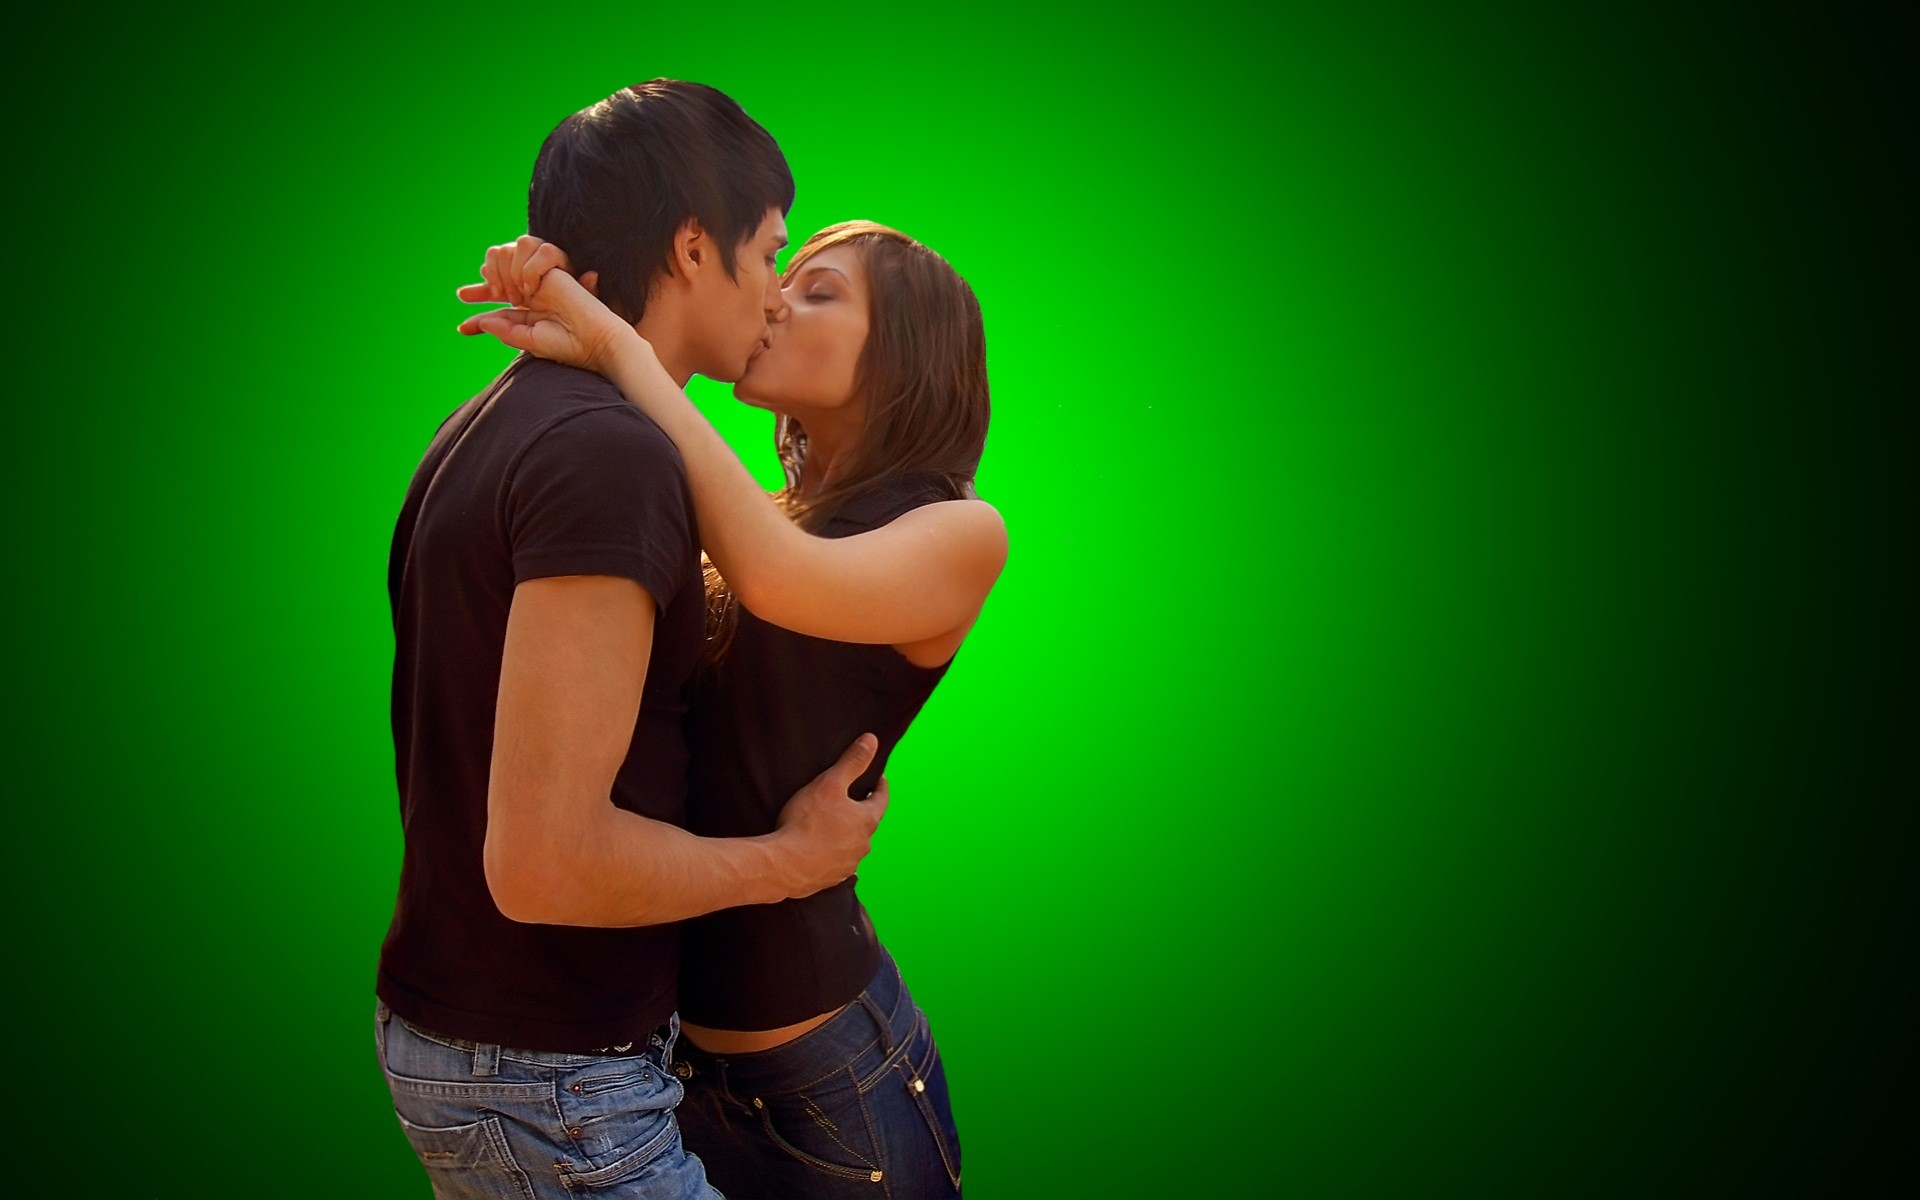 1920x1200 Hot Kiss Wallpaper Download free Candy Colors Lips Mobile Wallpaper  contributed by